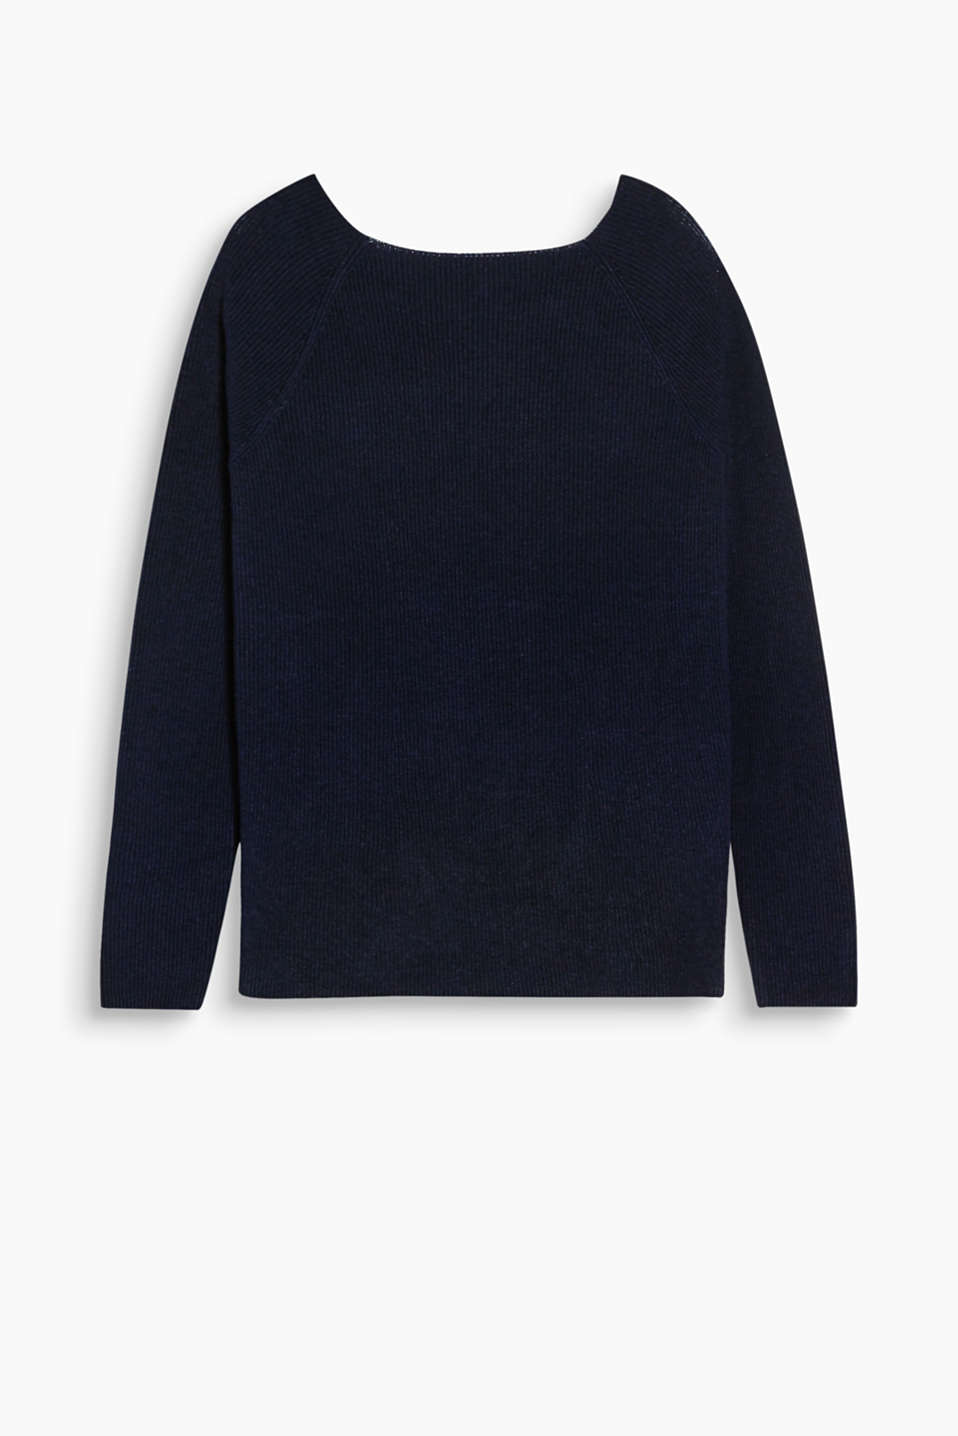 Relaxed favourite: rib knit jumper with a bateau neckline and high-quality wool